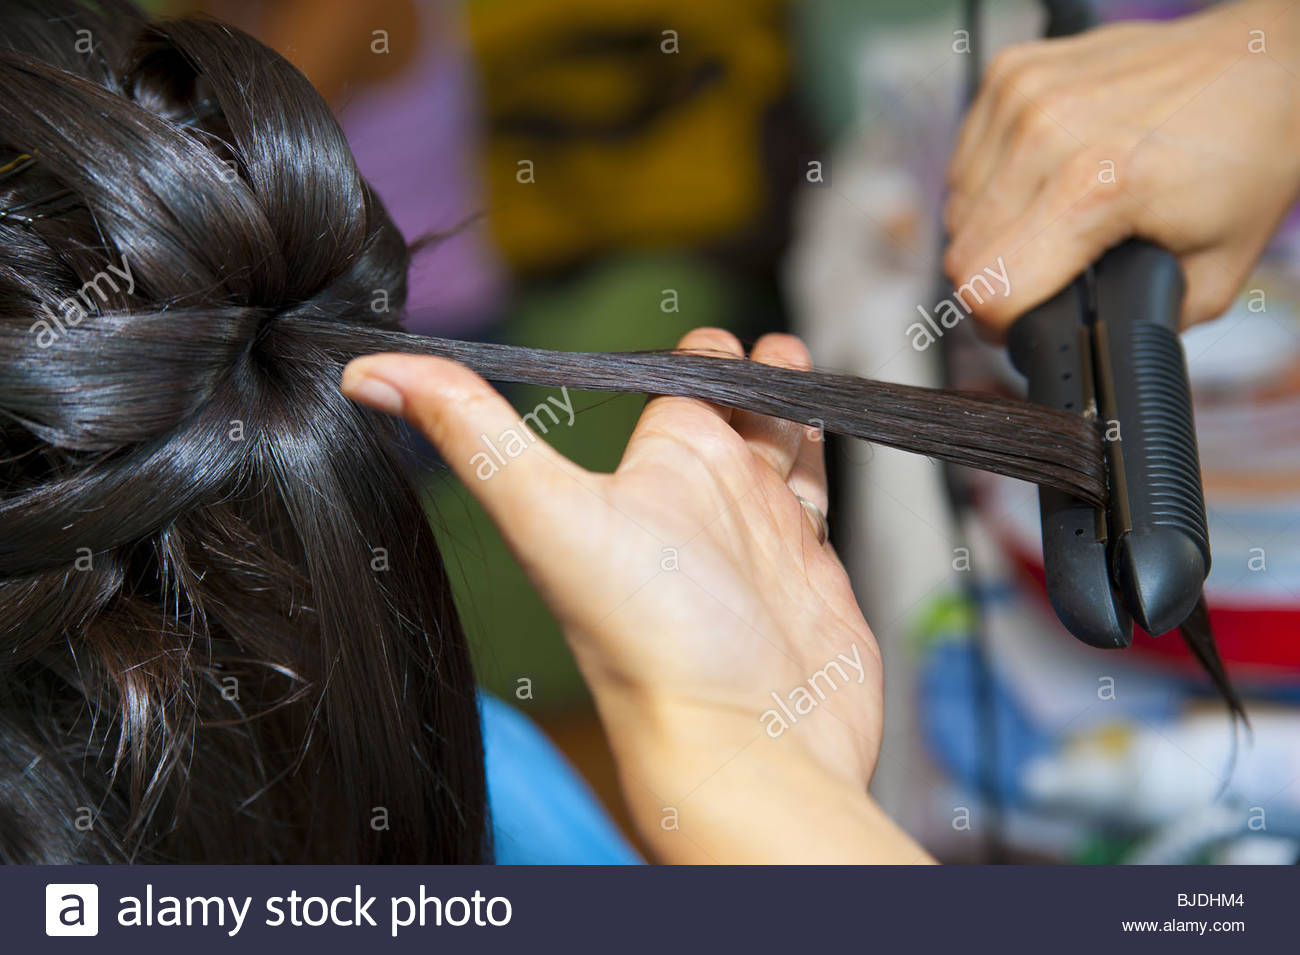 Pulling hair with a straight iron - Stock Image